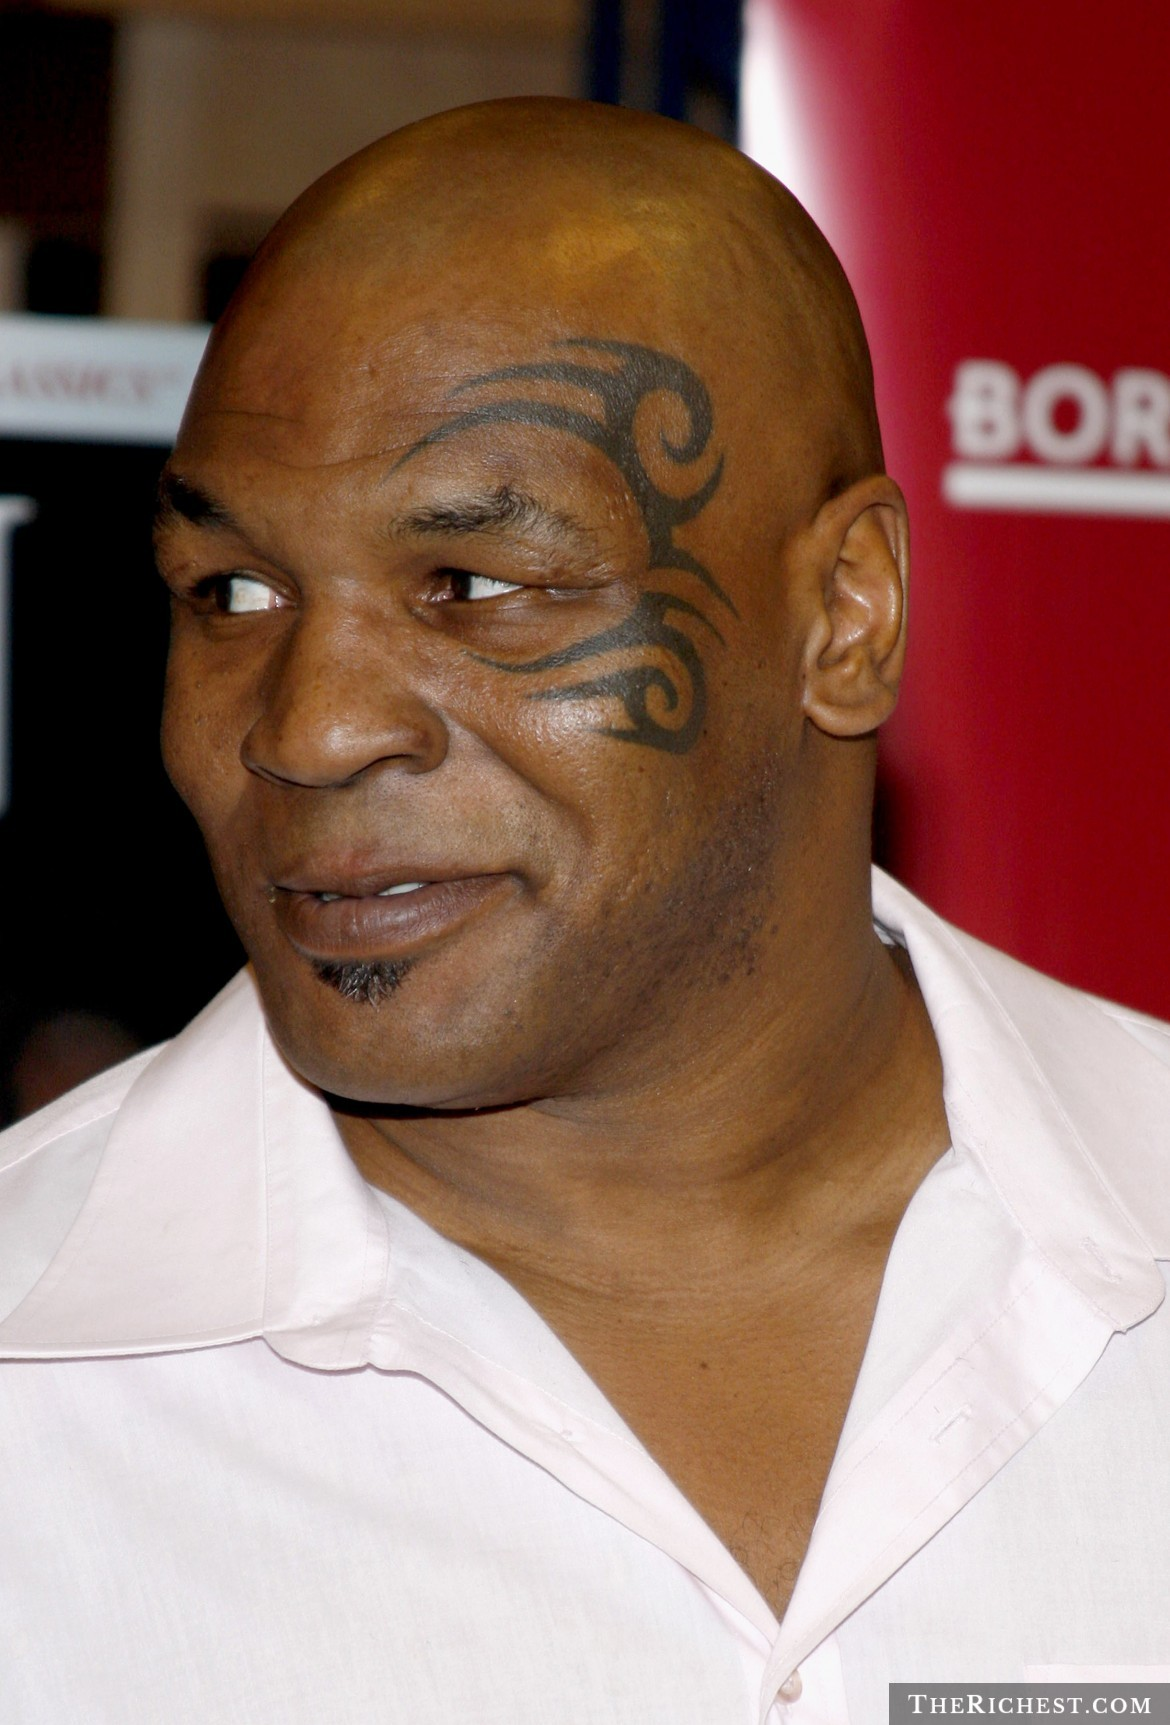 adoratrices prostitutas mike tyson prostitutas